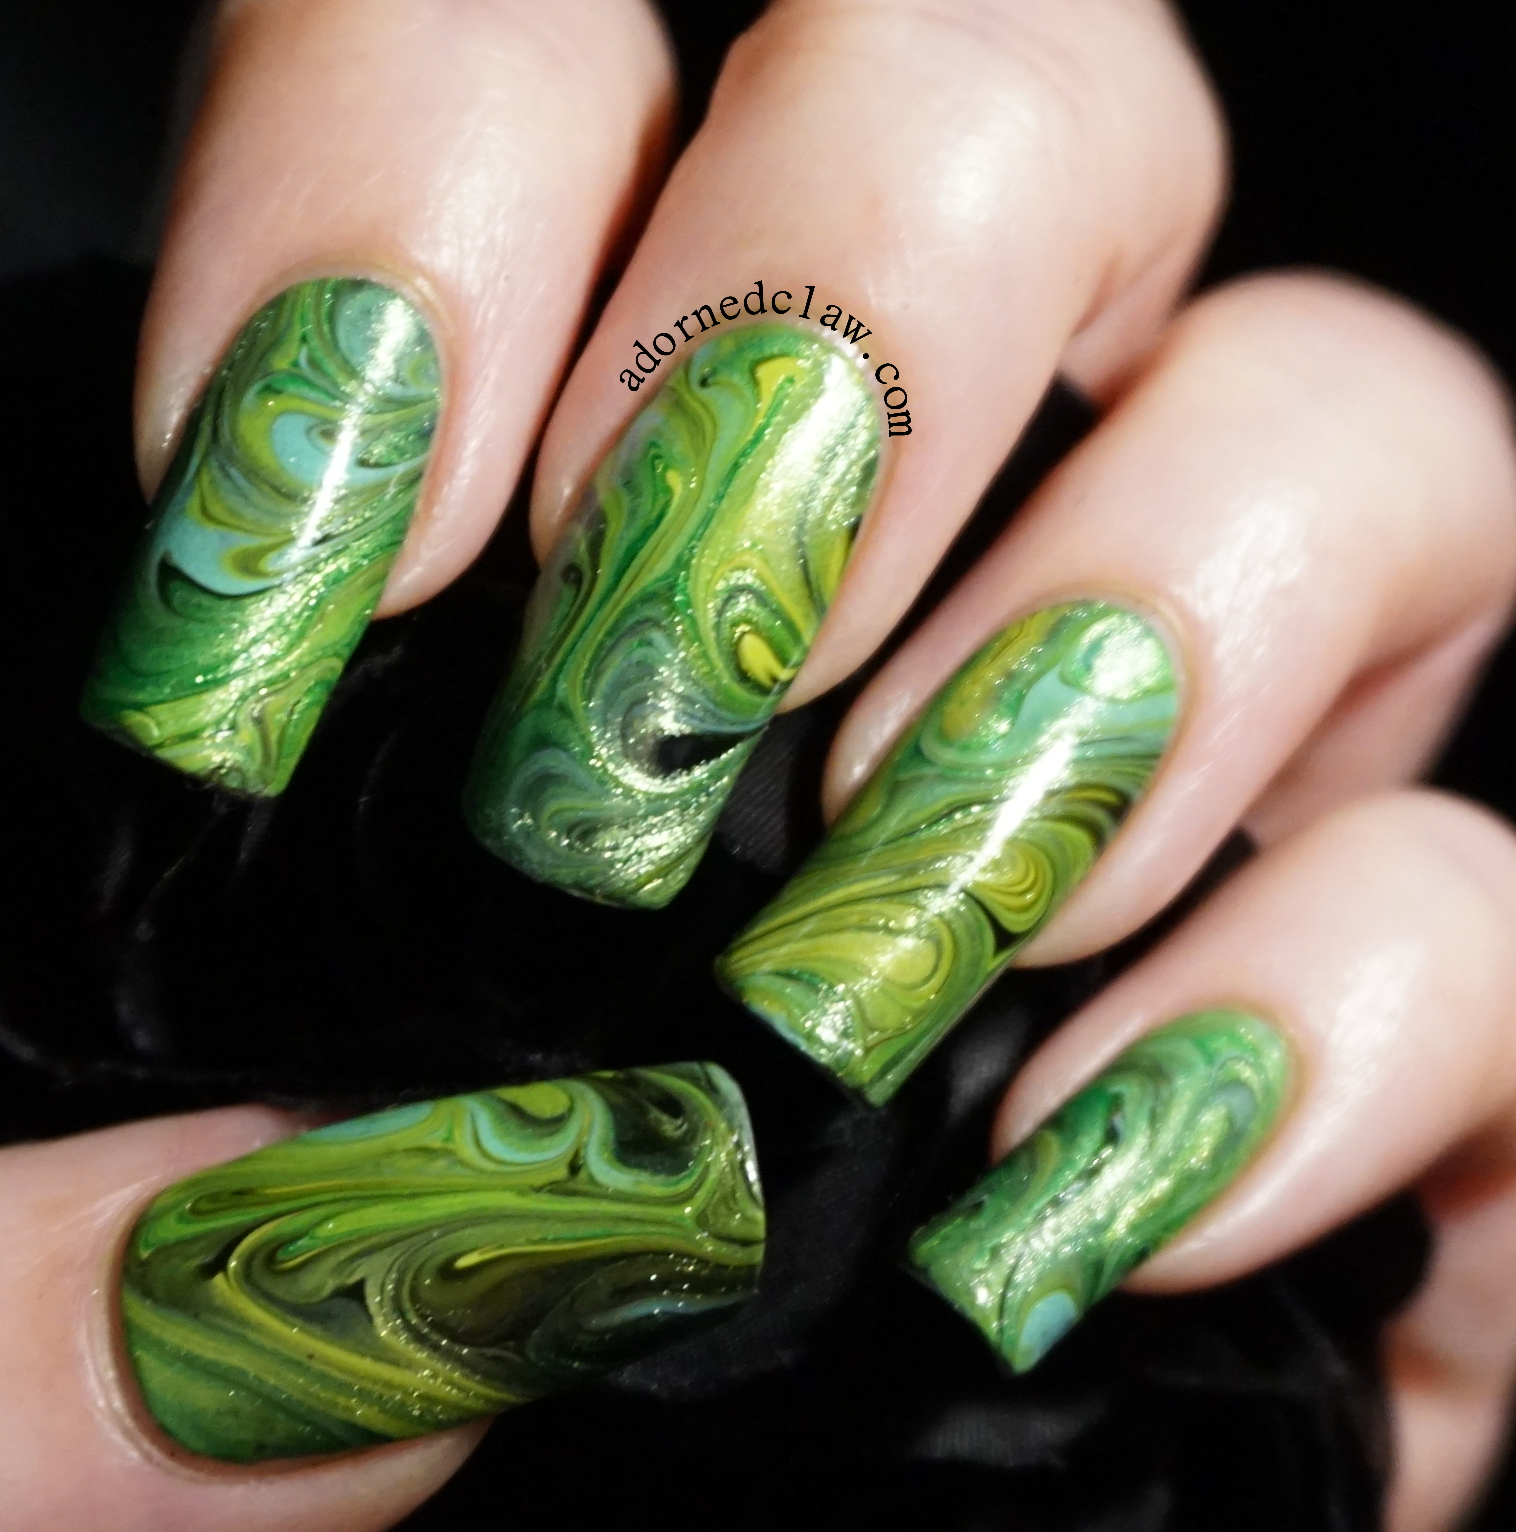 Green Swirly Dry Marble Nail Art! | The Adorned Claw